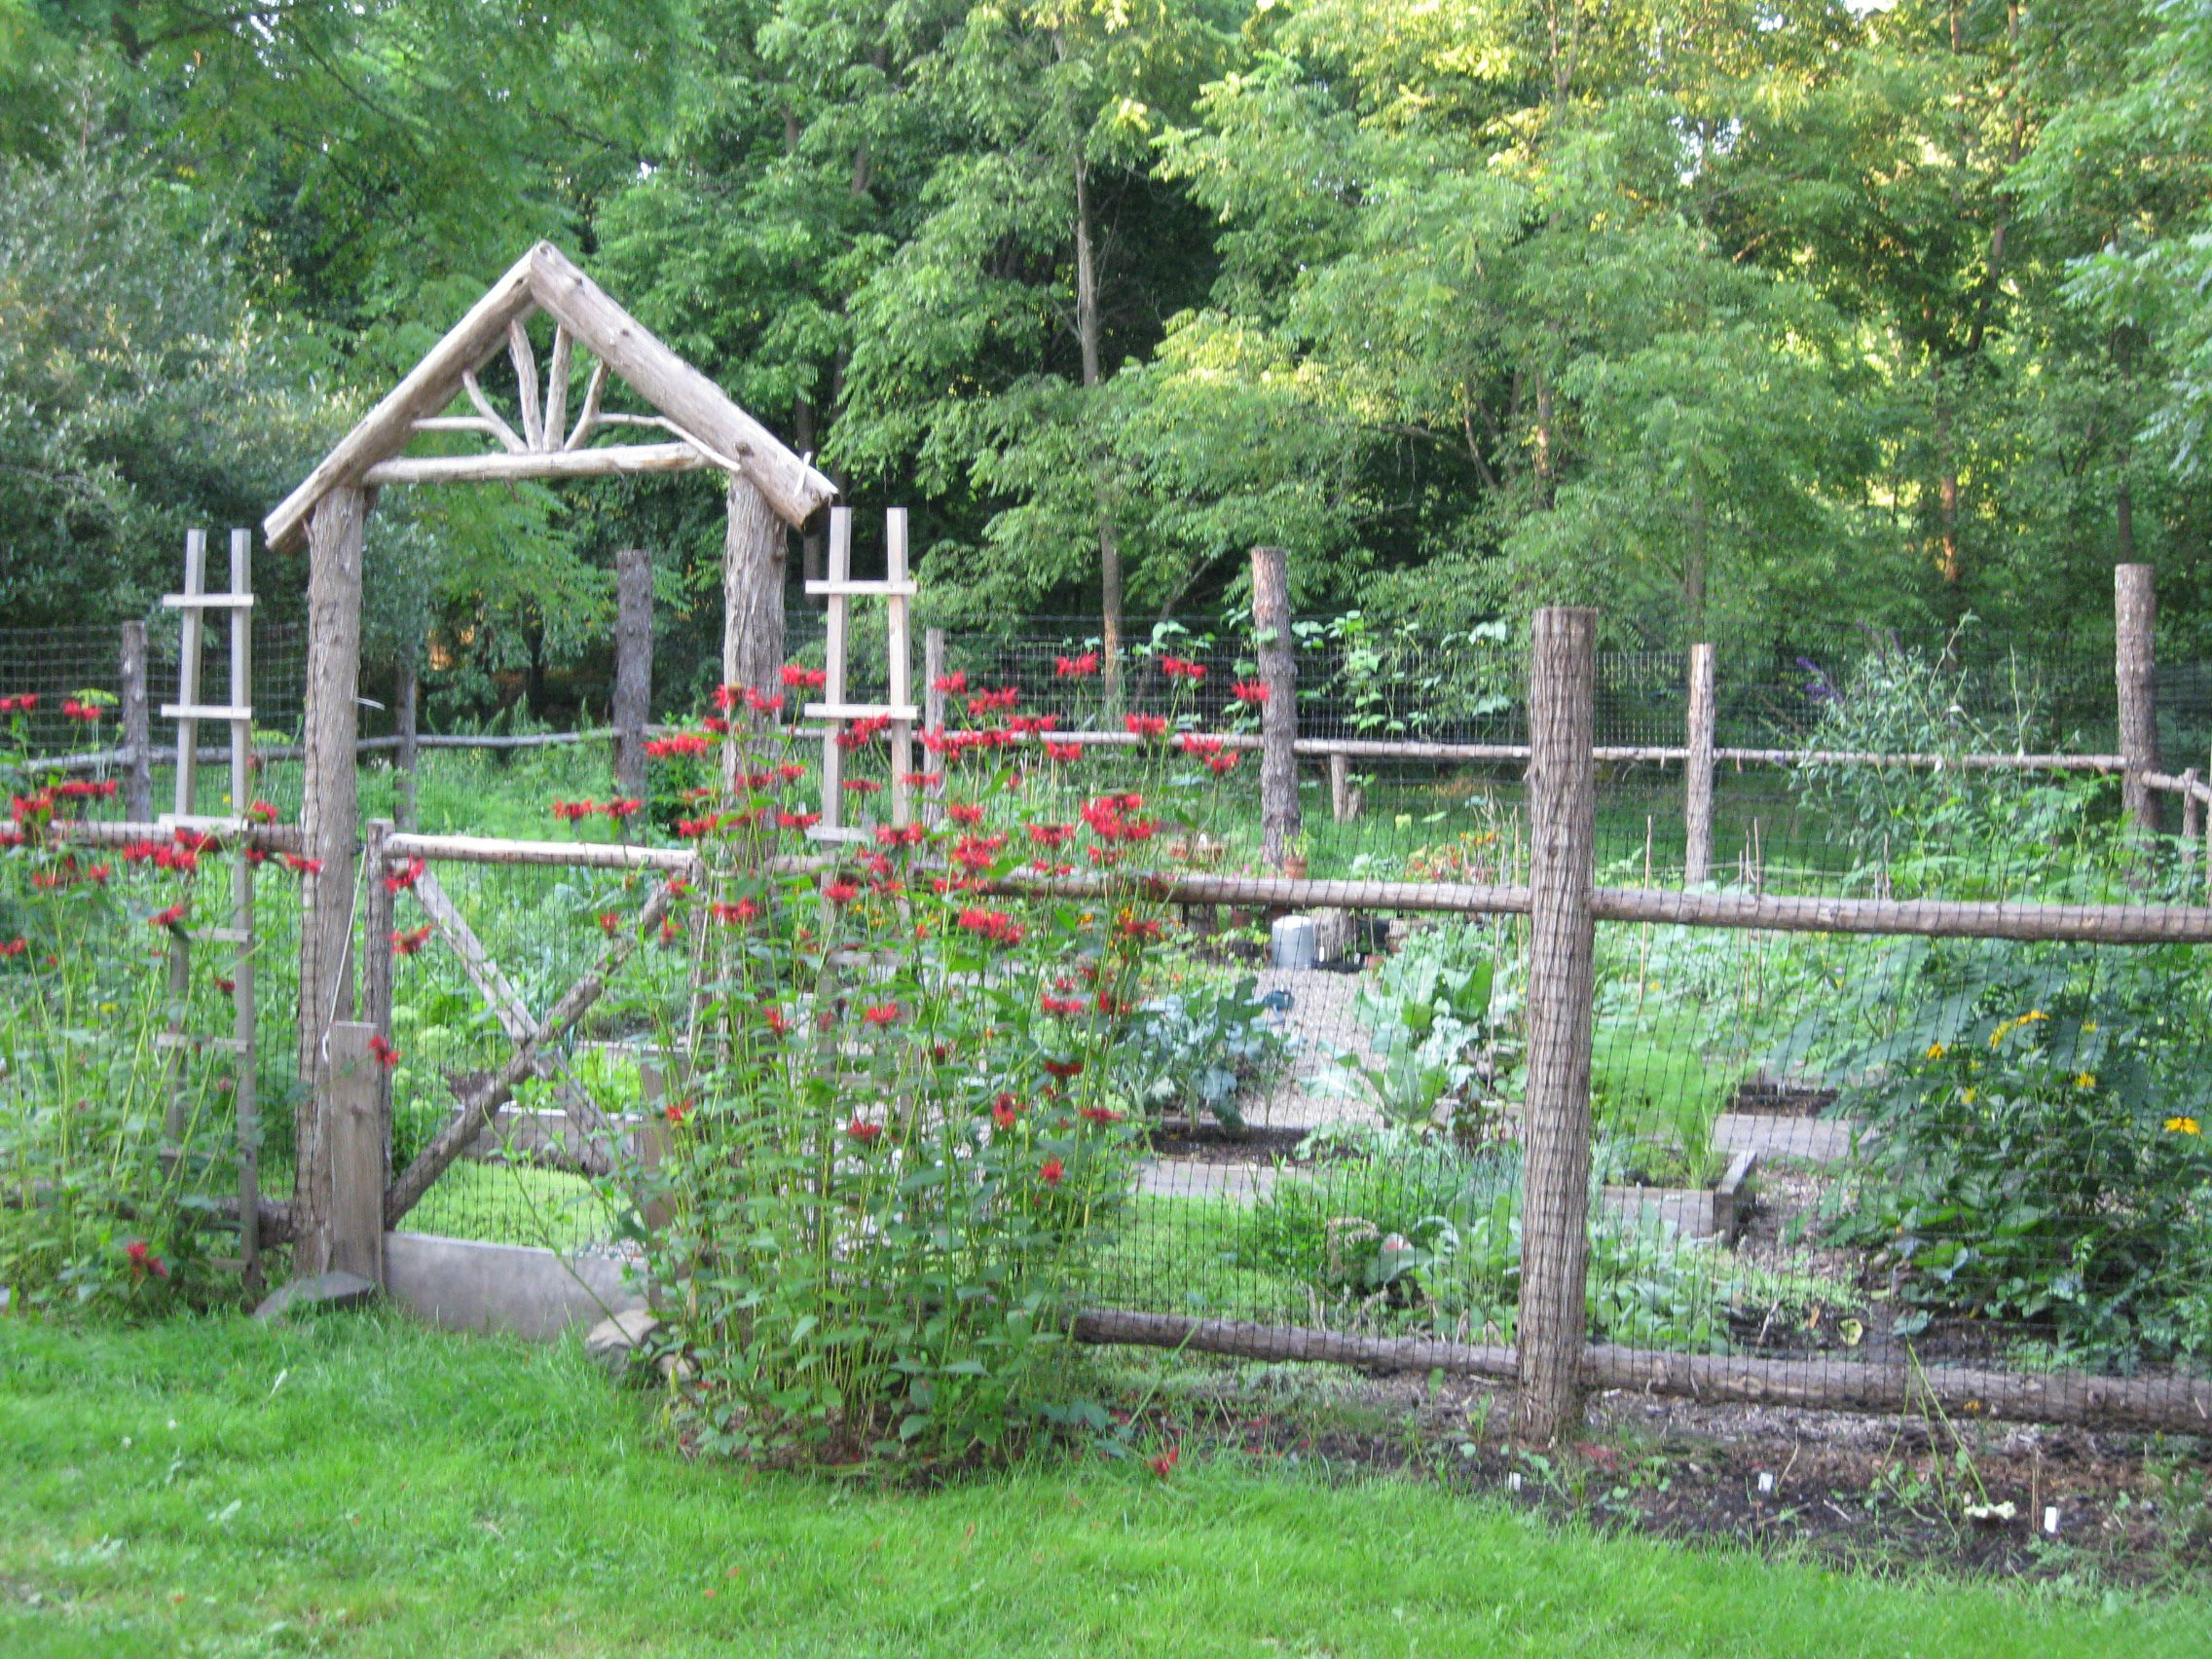 Marvelous Vegetable Garden Fence Ideas Part - 2: Just For Fun Friday. Vegetable Garden DesignVegetable GardeningVegetable  Garden FencesKitchen ...